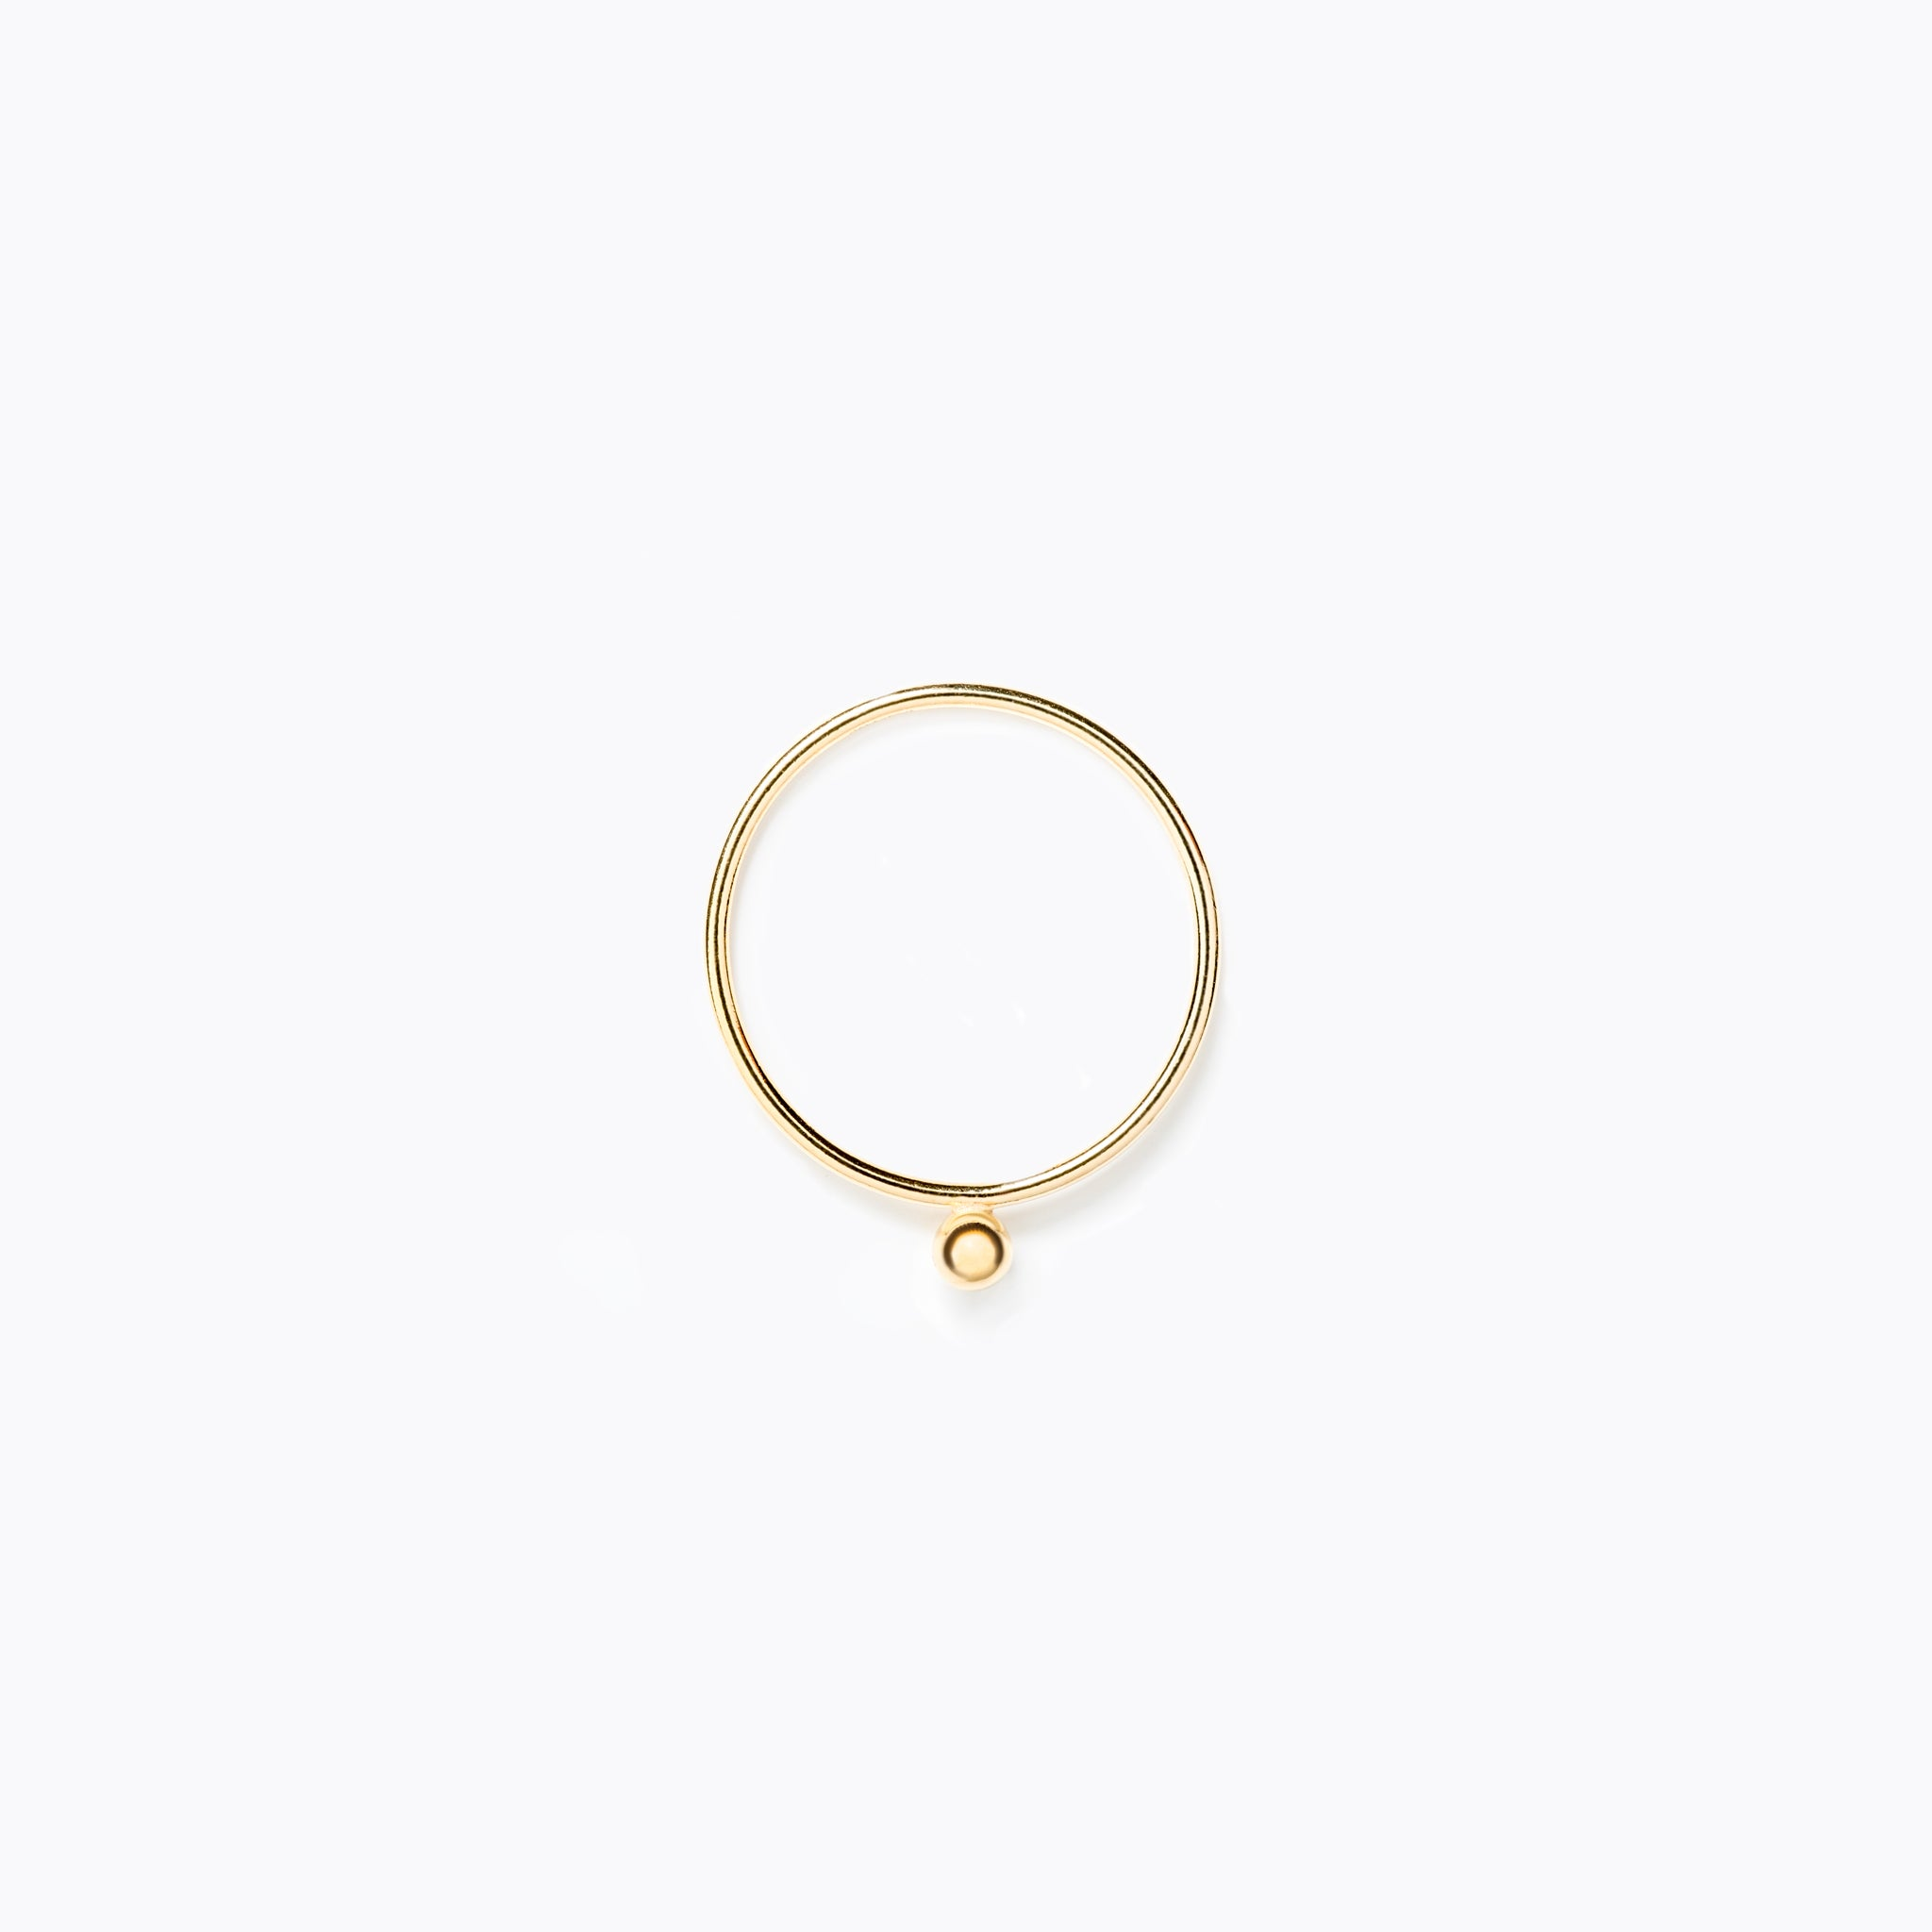 Wanderlust Life Ethically Handmade jewellery made in the UK. Minimalist gold and fine cord jewellery. zenith, fine gold ring